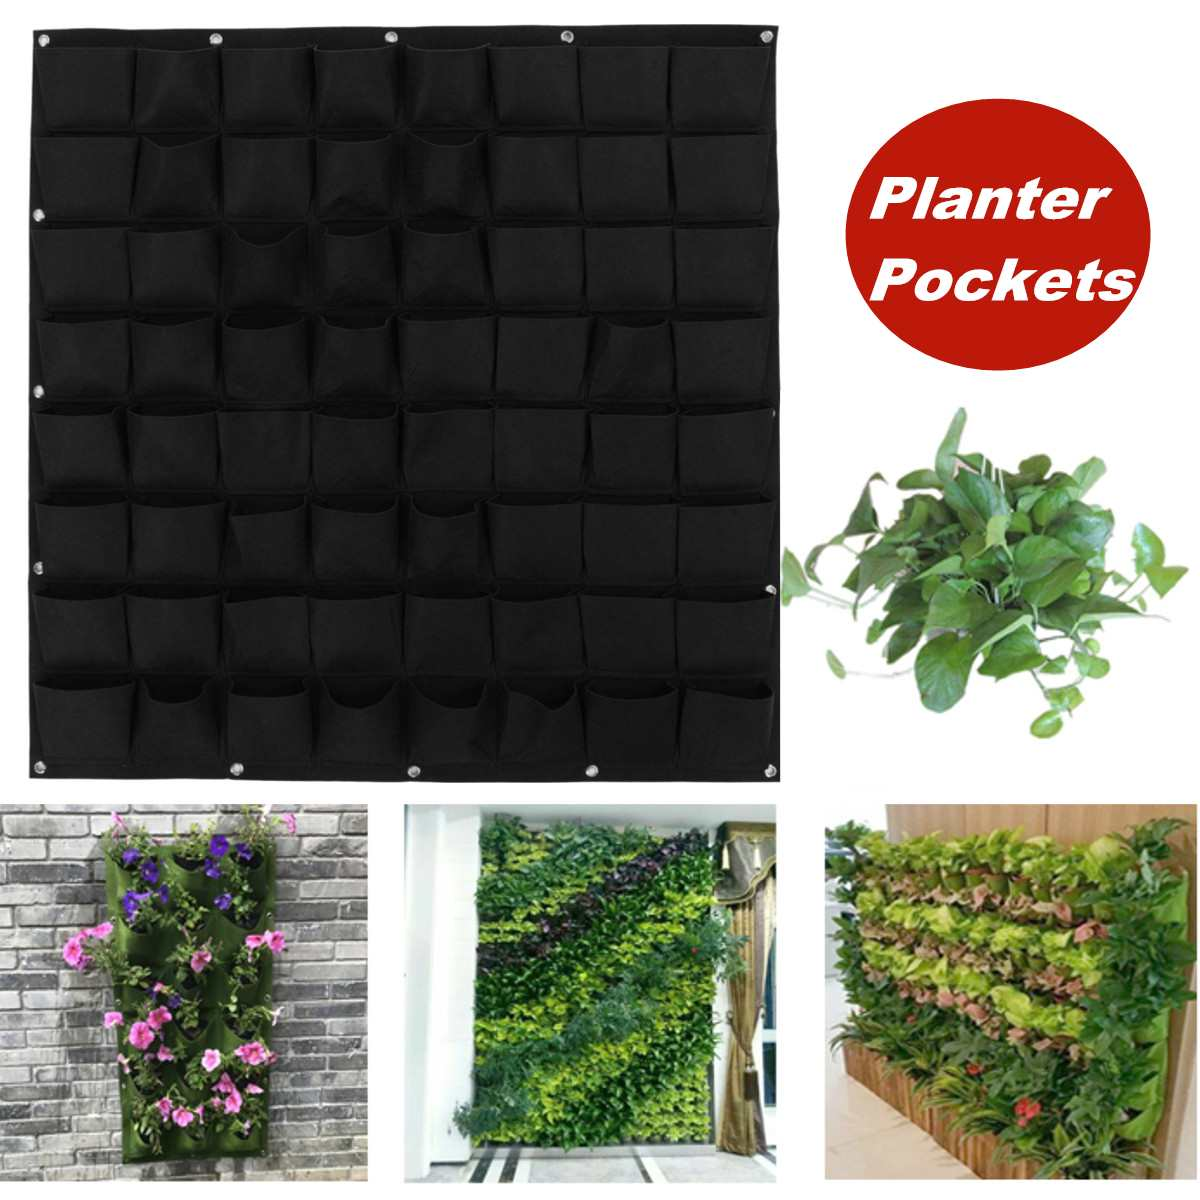 Multi Pocket wall-mounted Planting Bags